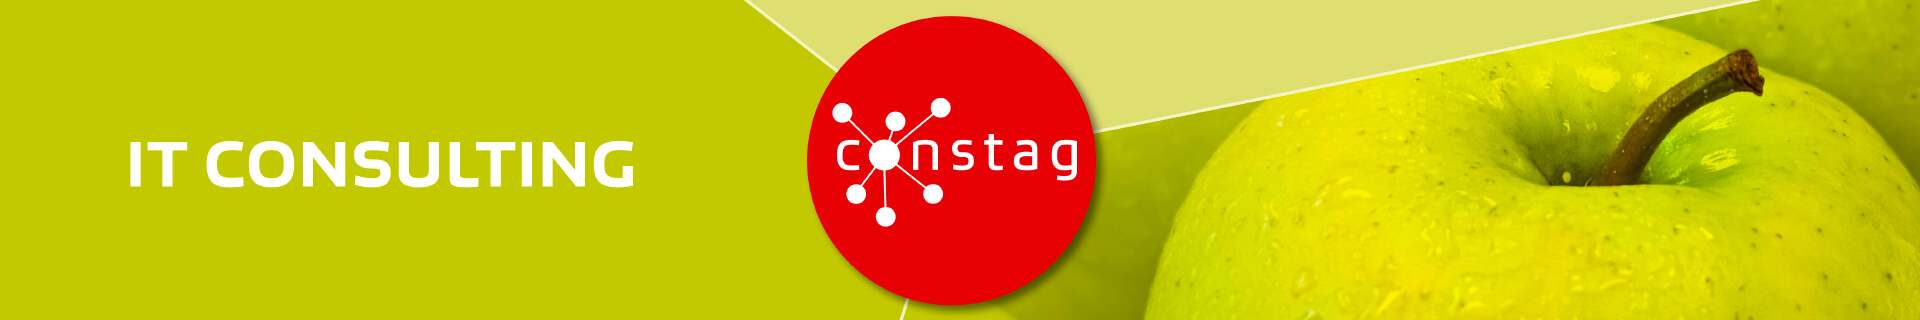 Constag Produkte IT Consulting Neutral